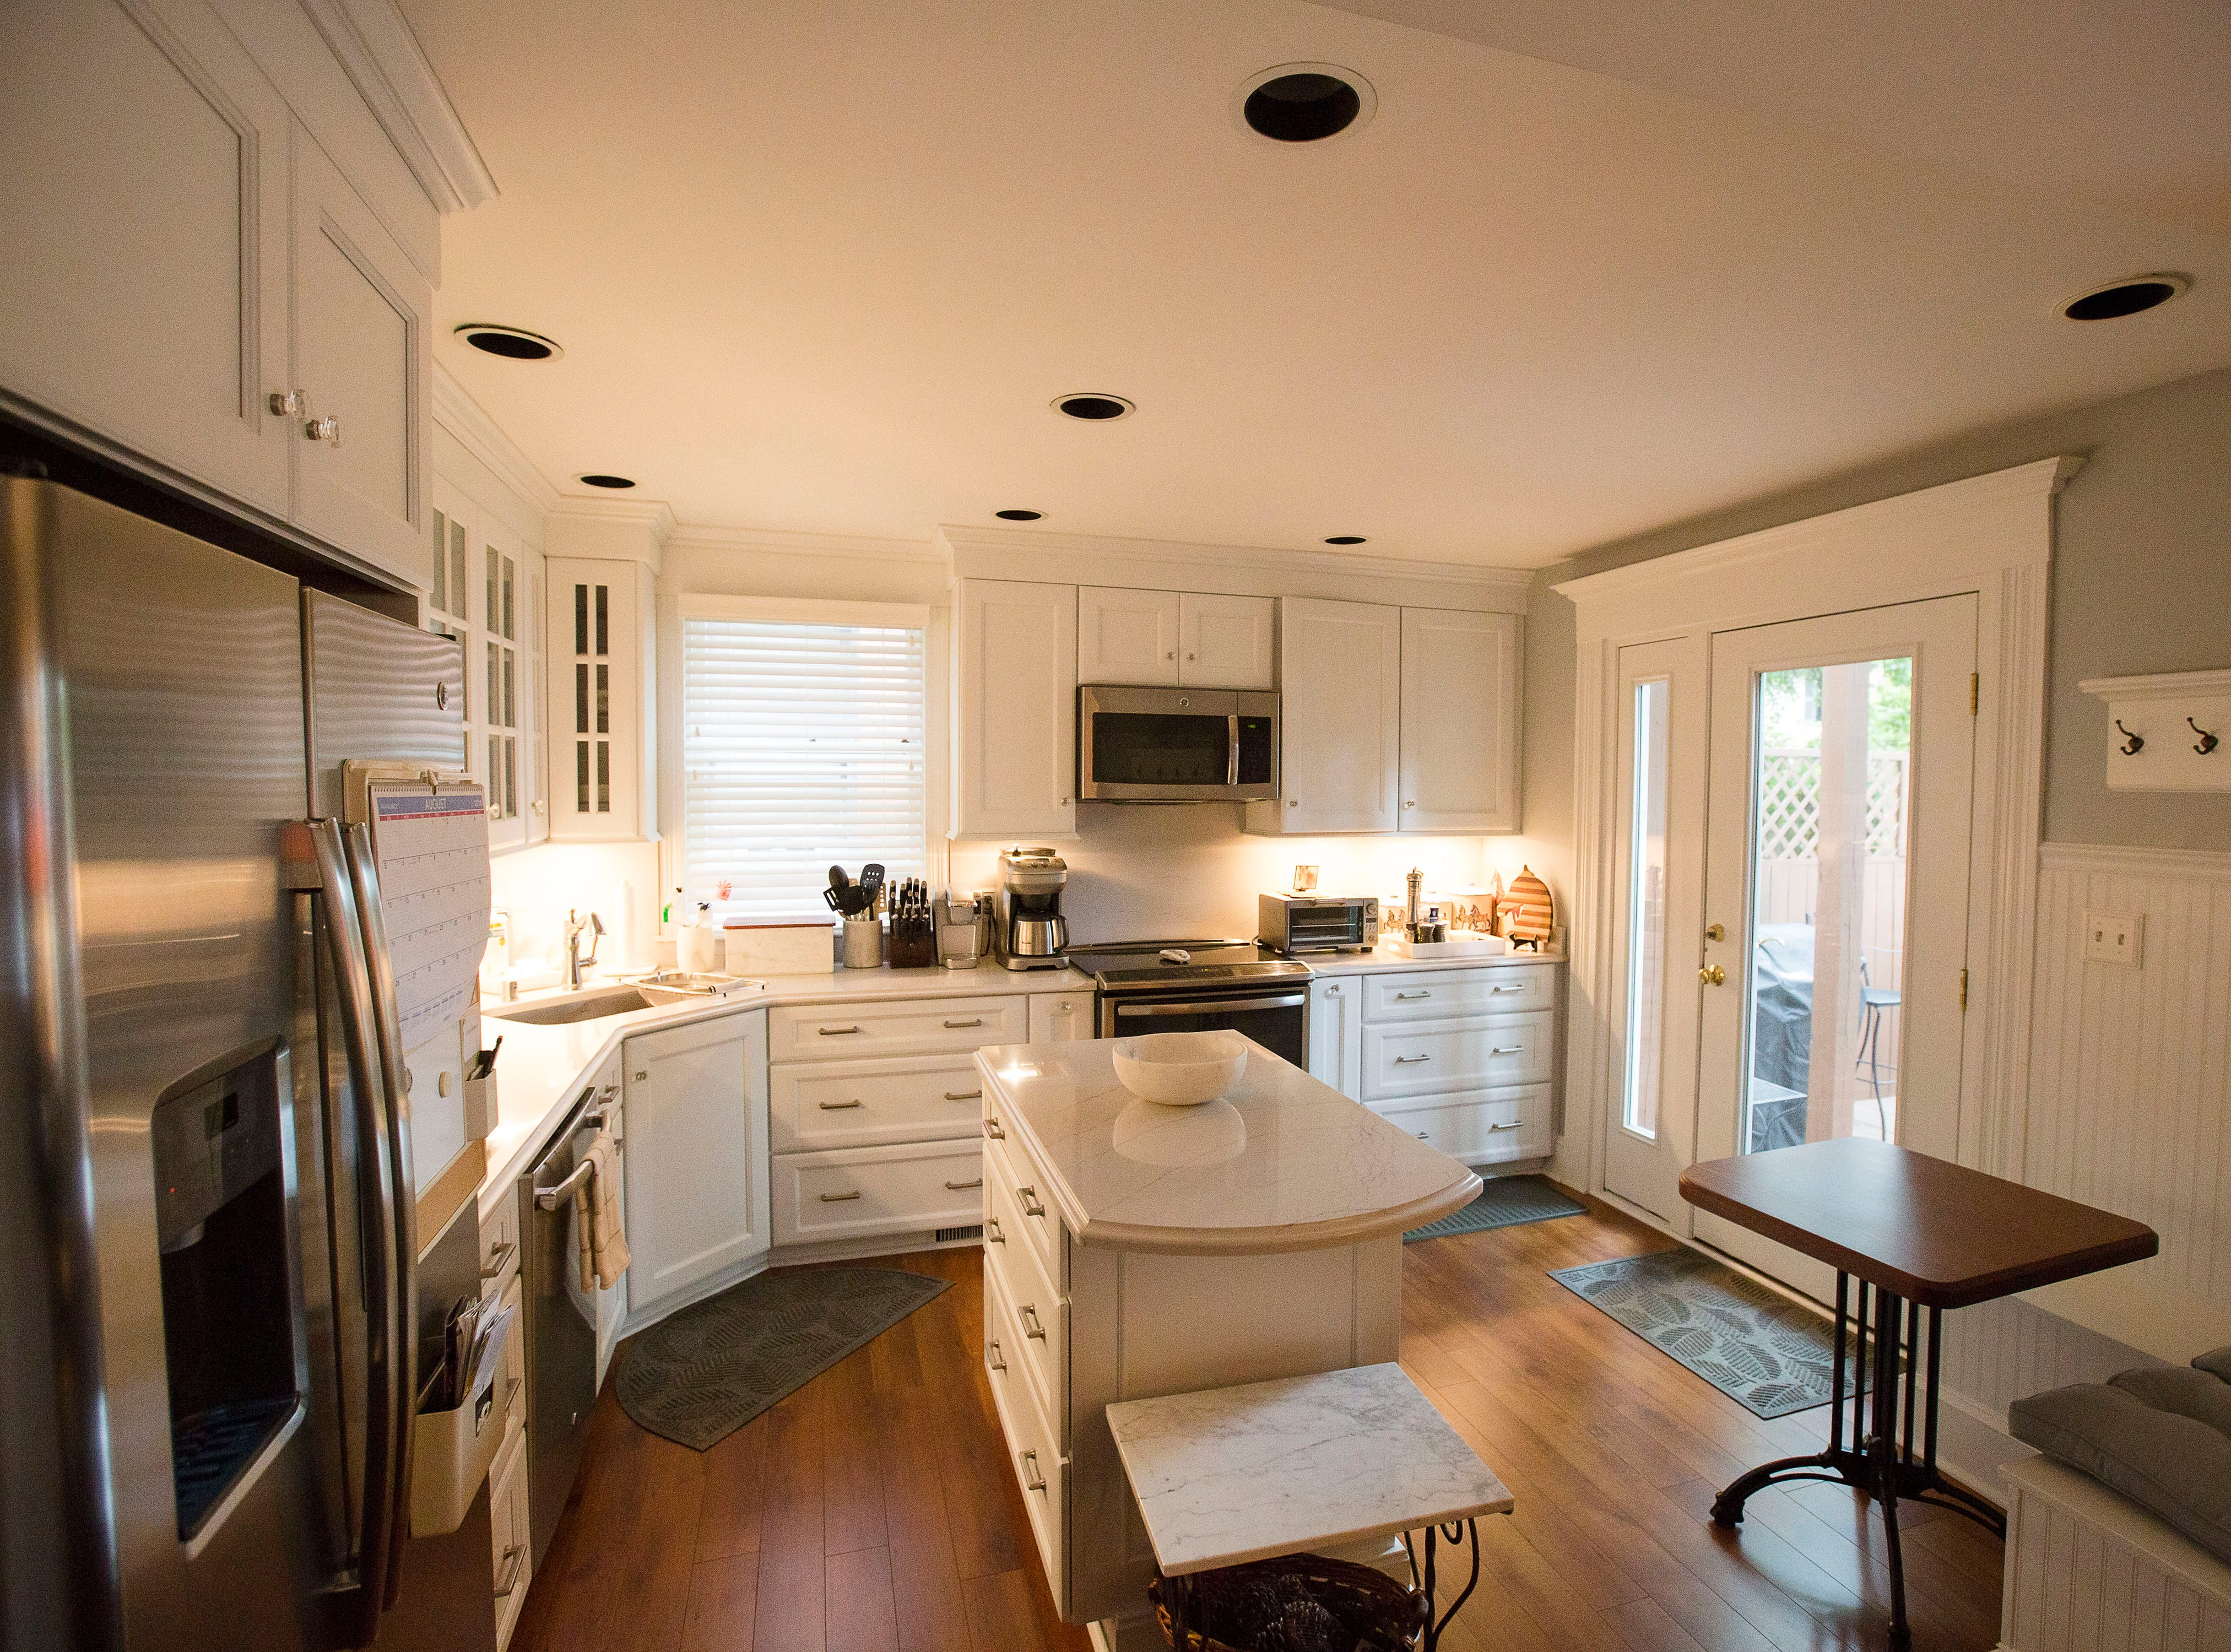 Remodeled kitchen at victorian home in historic Cherokee Triangle in Louisville, KY.